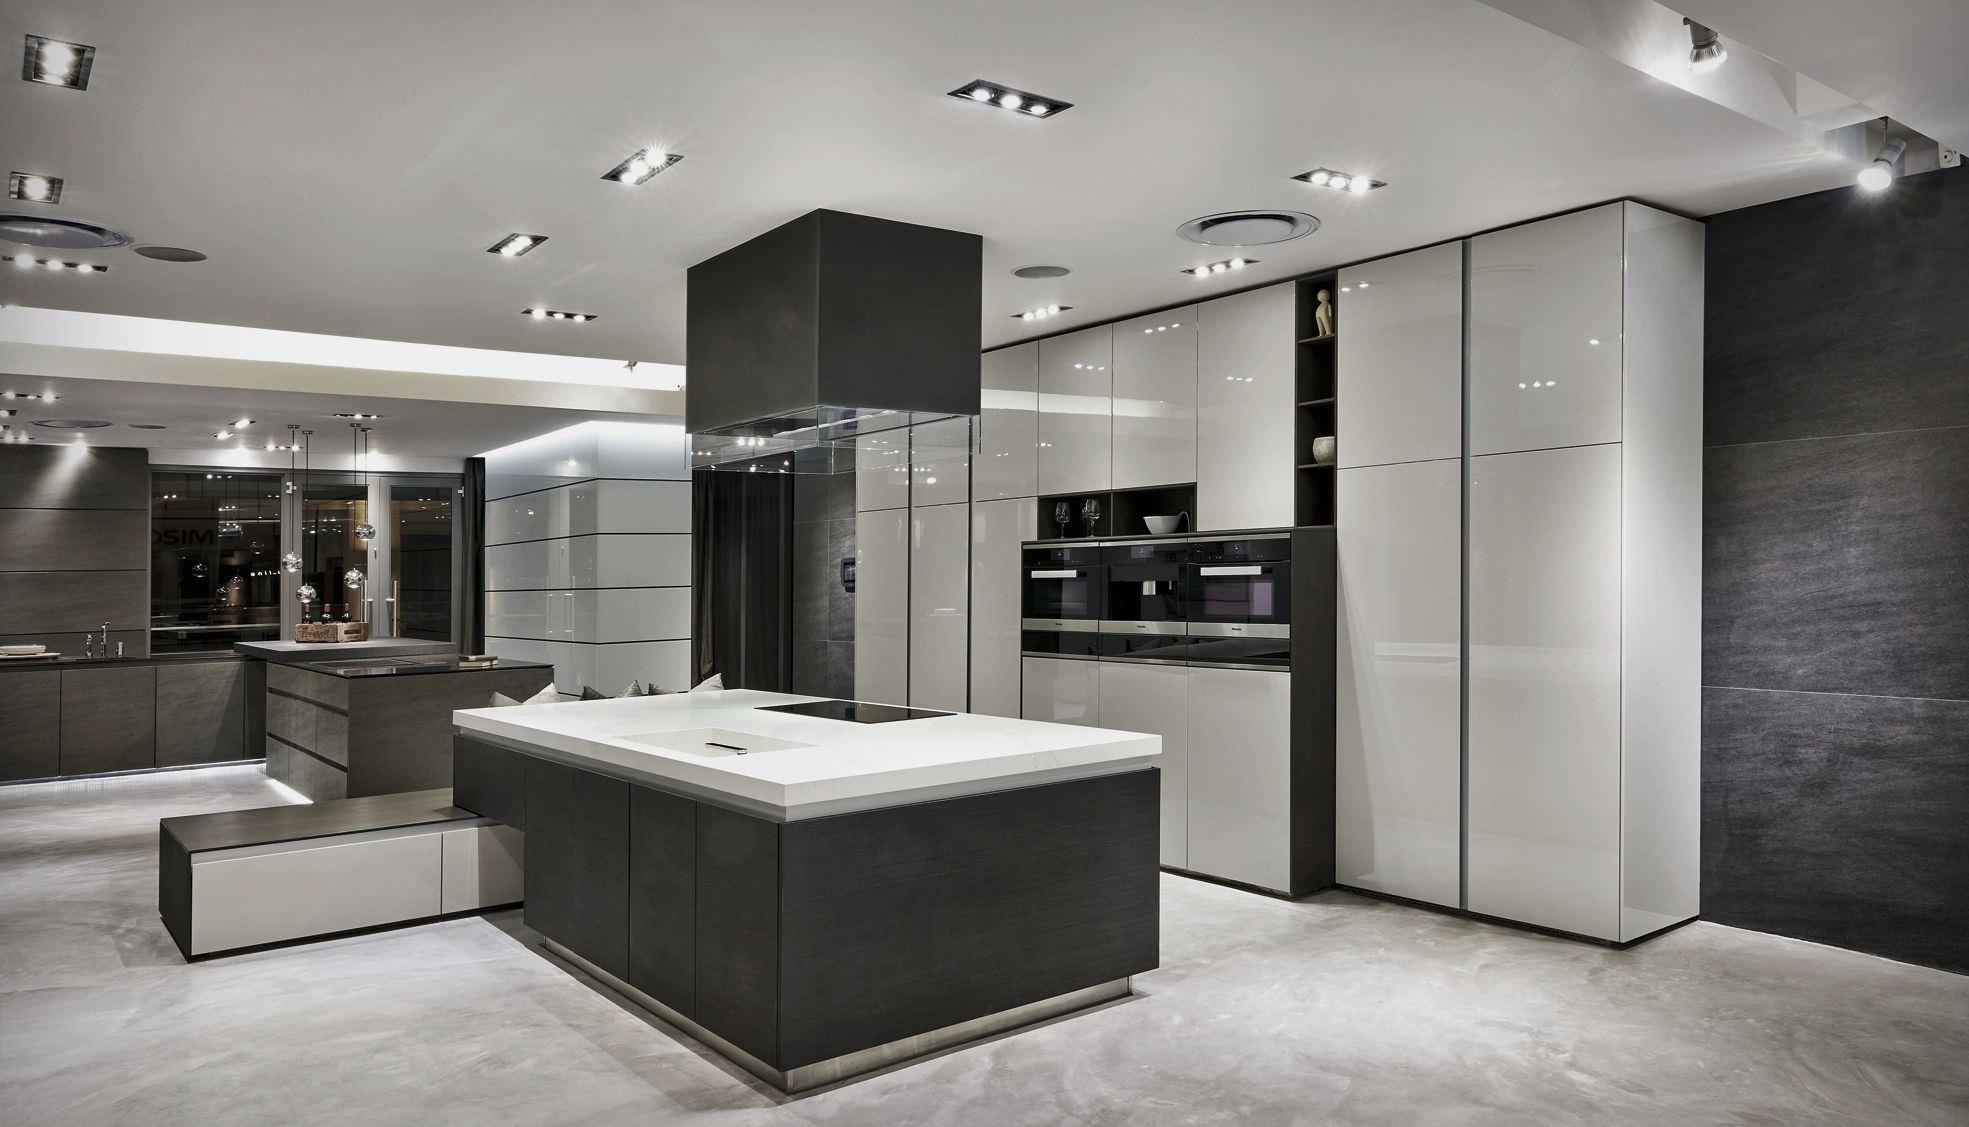 KitchenShowroomDesignIdeasWithImages